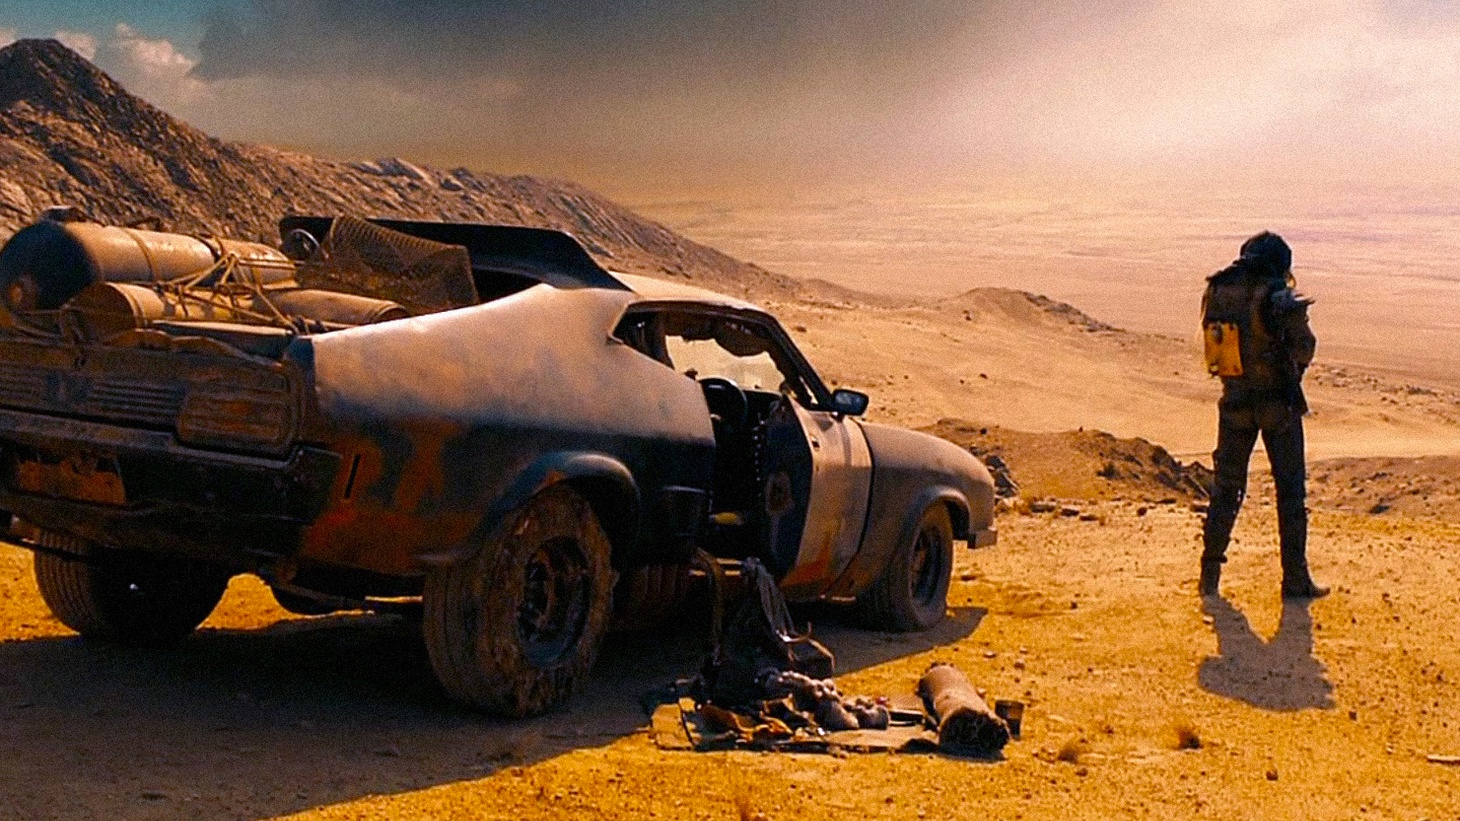 A 92-year-old media mogul resigns amid major conflict and we talk to director George Miller about  his Mad Max movies  .